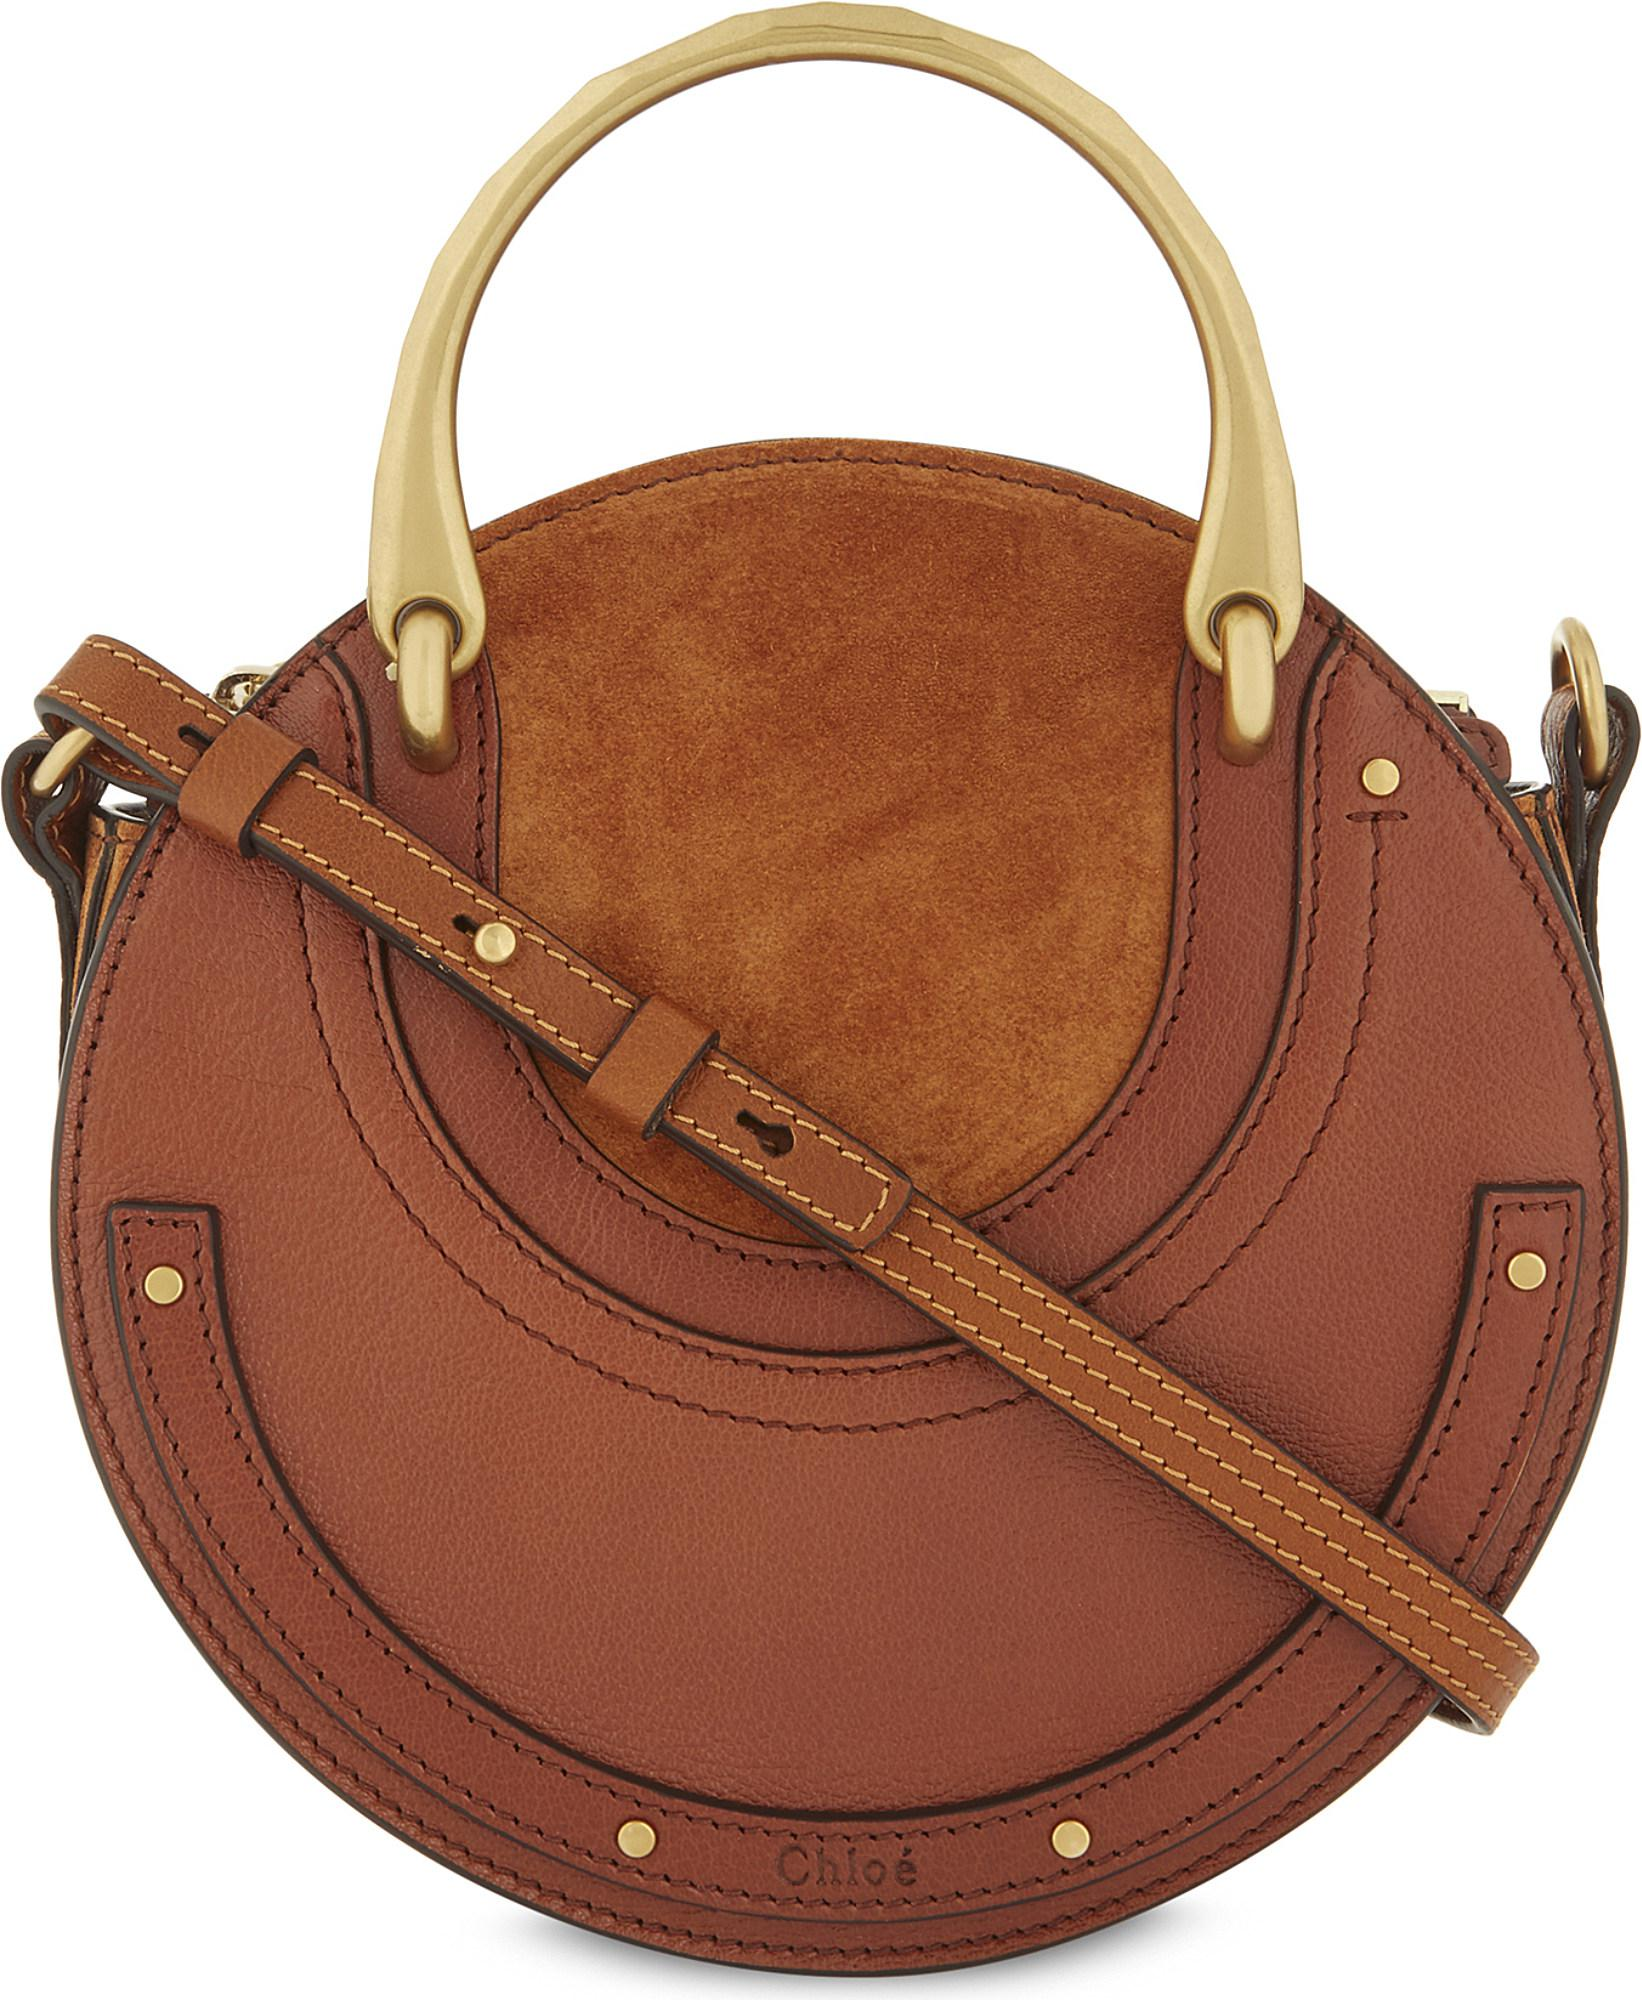 Pixie small bag - Brown Chlo 9g9O9Htbnm